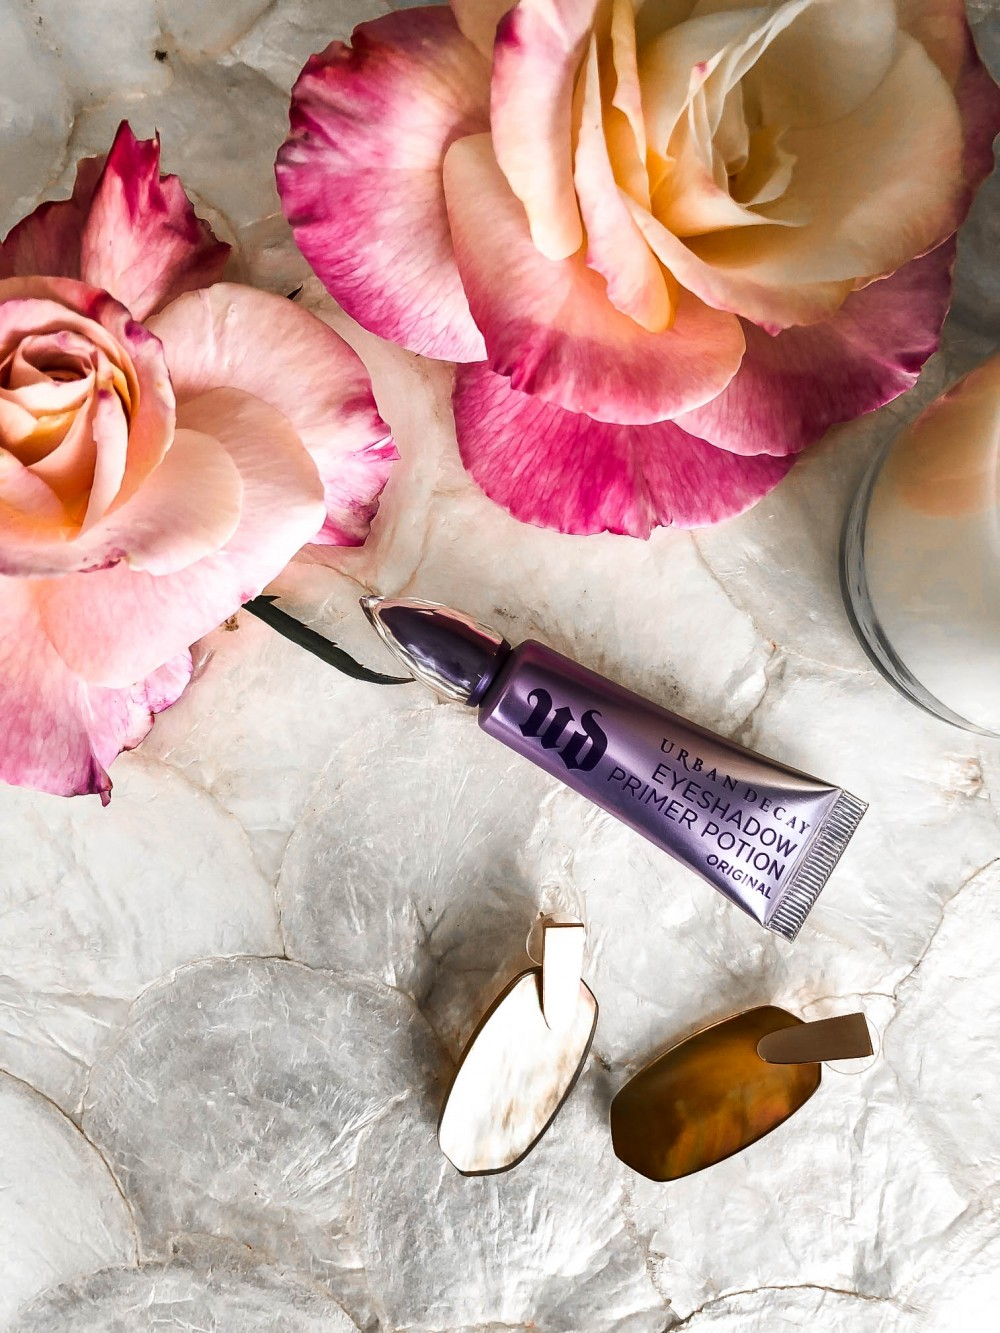 Currently Impressed Urban Decay Original Eyeshadow Primer Potion, Top Beauty Products, Beauty Product Review, Have Need Want